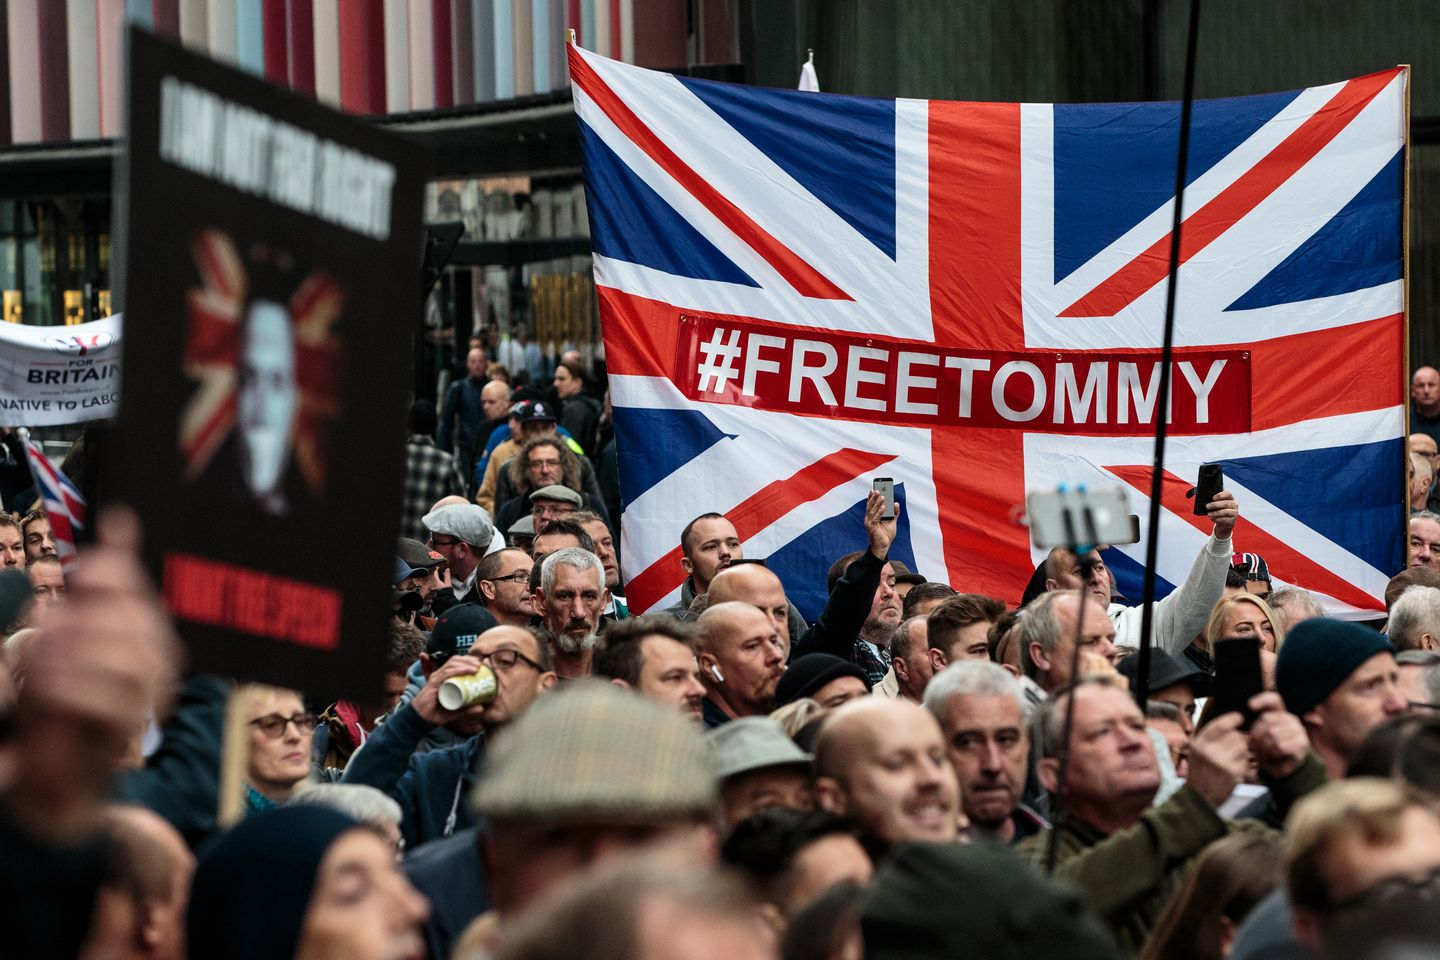 Supporters of Tommy Robinson gathered outside the Old Bailey courthouse in London in October.